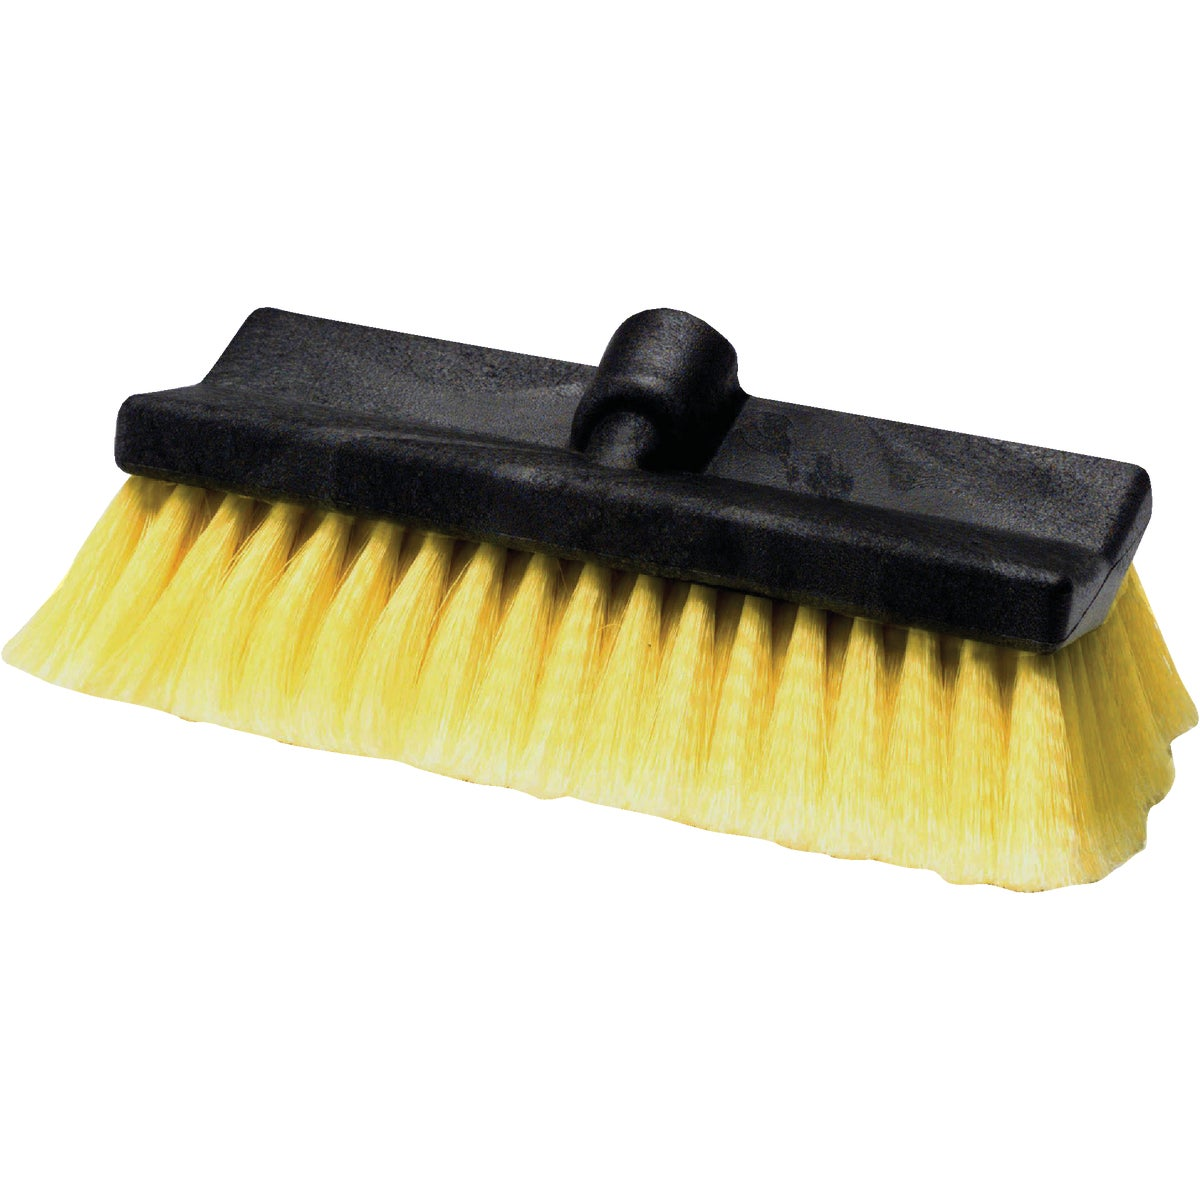 "10"" REPLACMNT WASH BRUSH - 93086 by Carrand Companies"